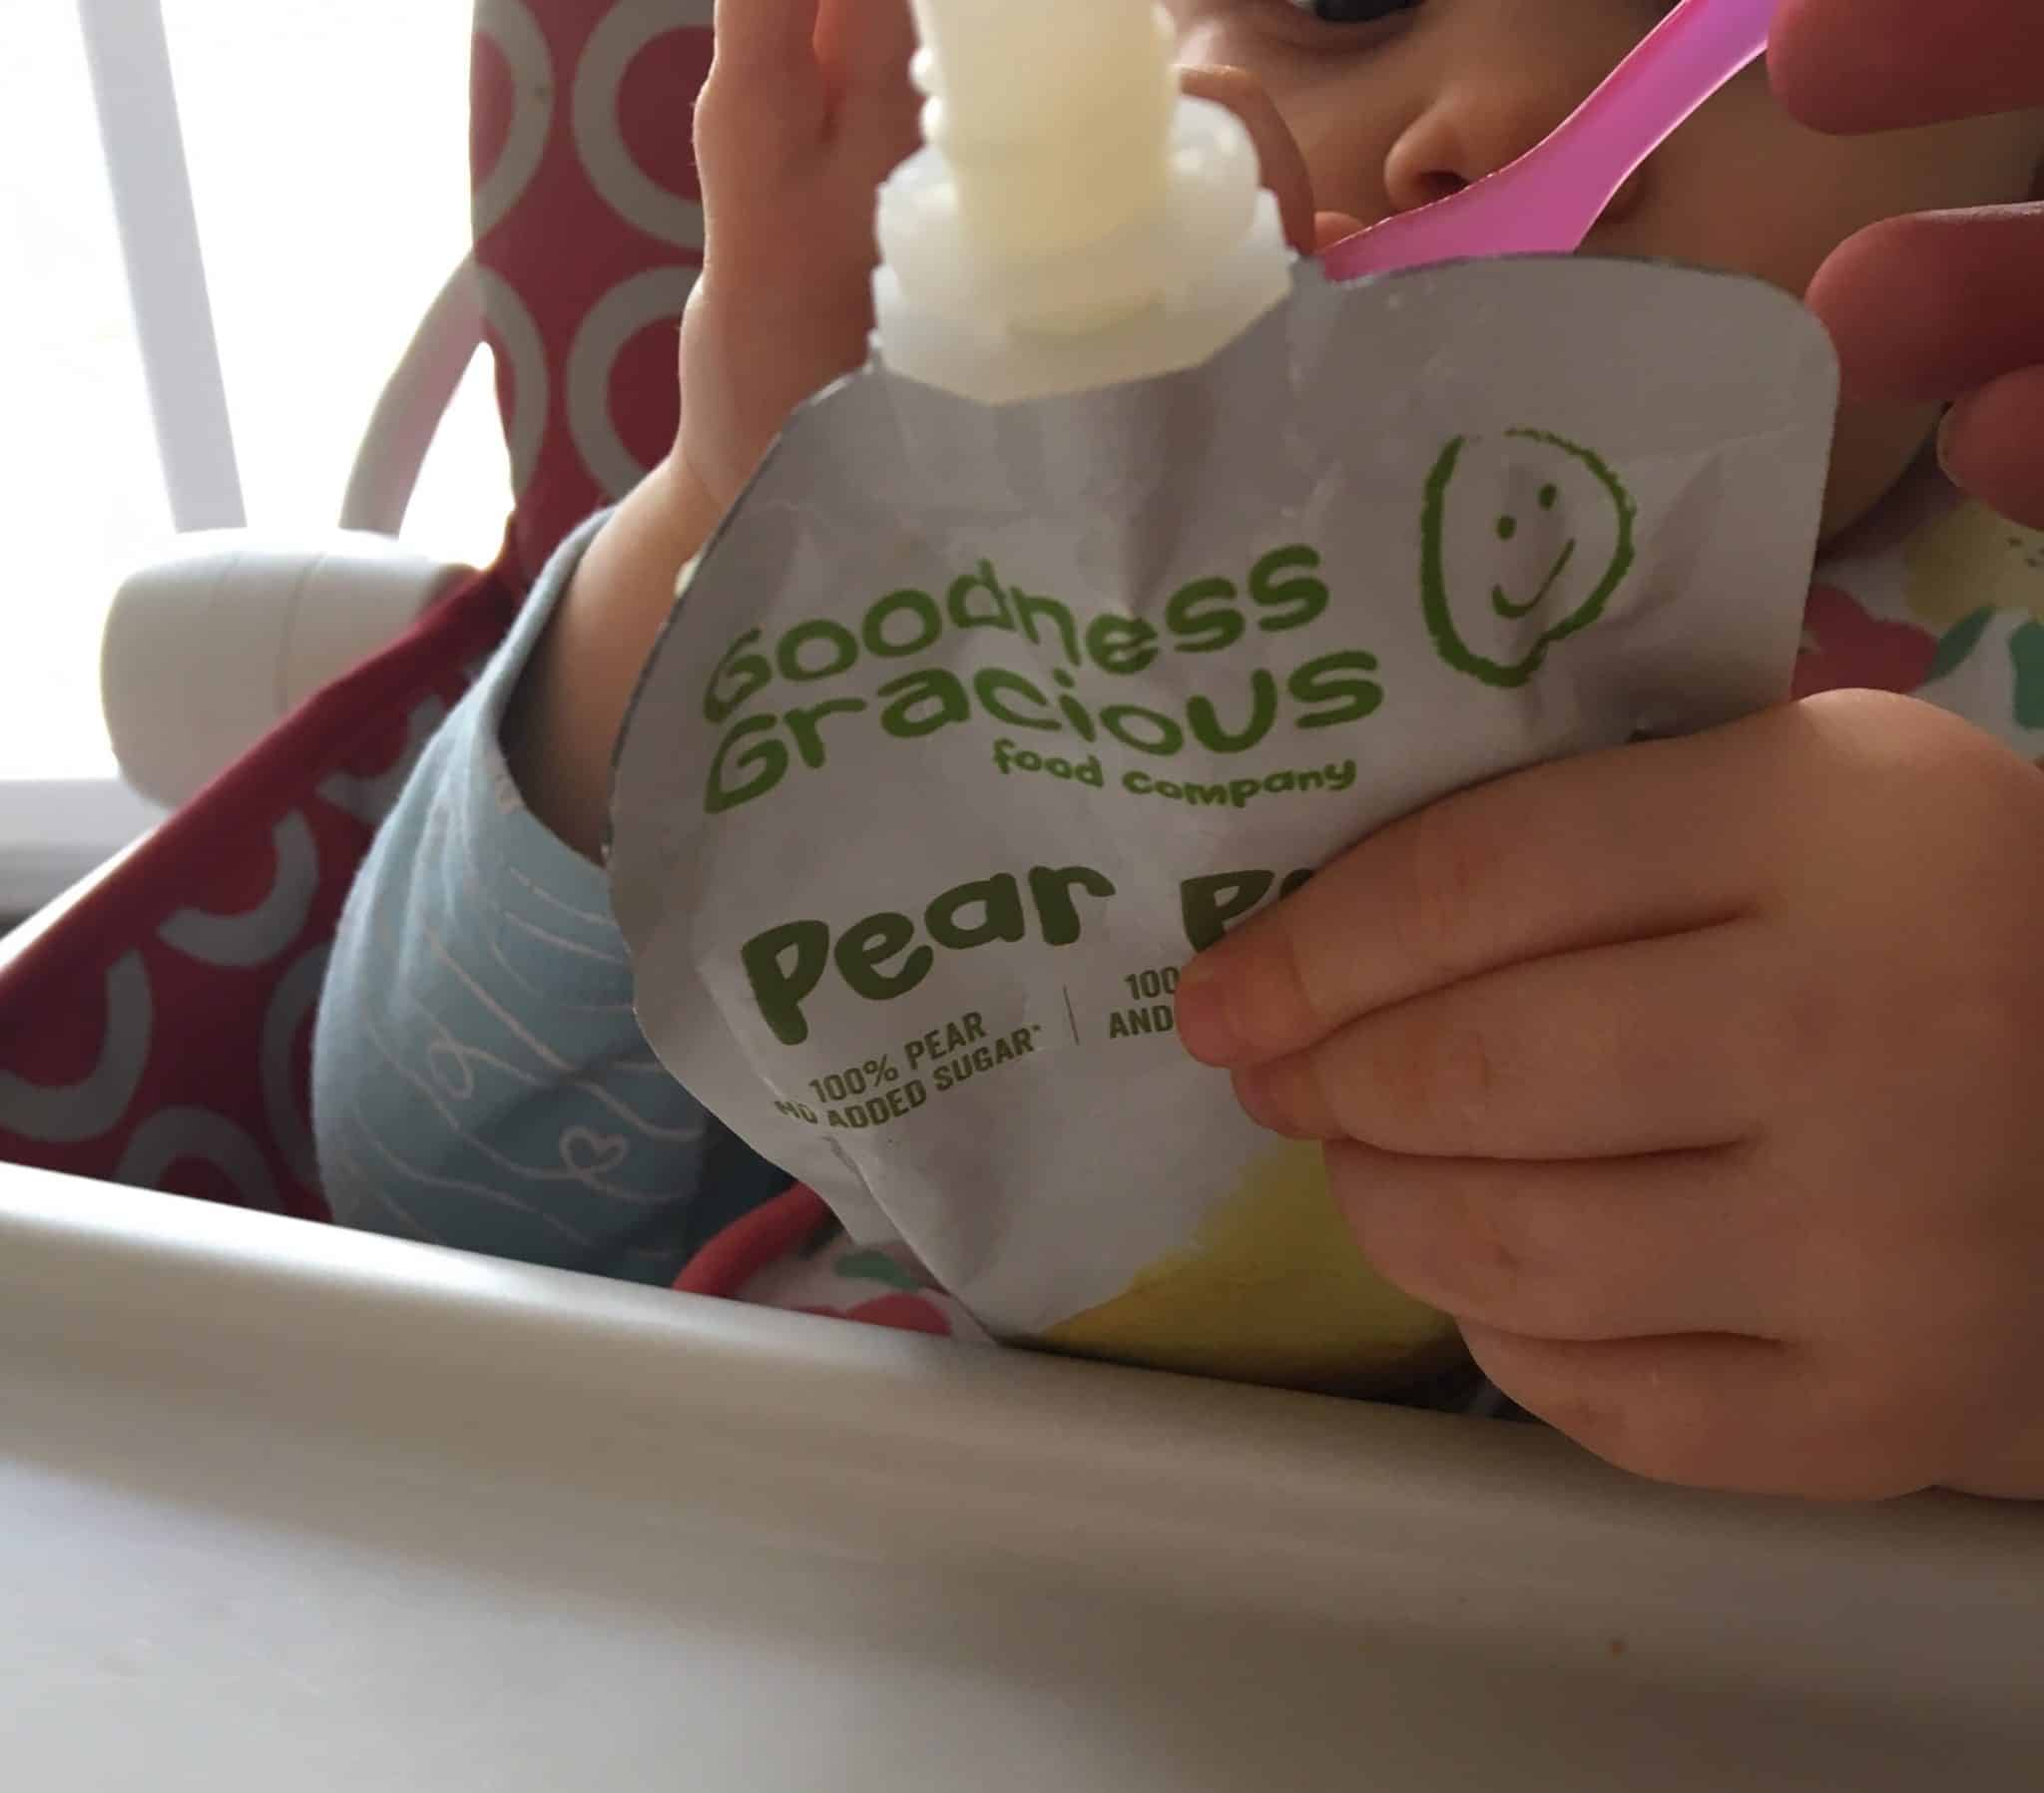 Pear Puree from Goodness Gracious Foof Company